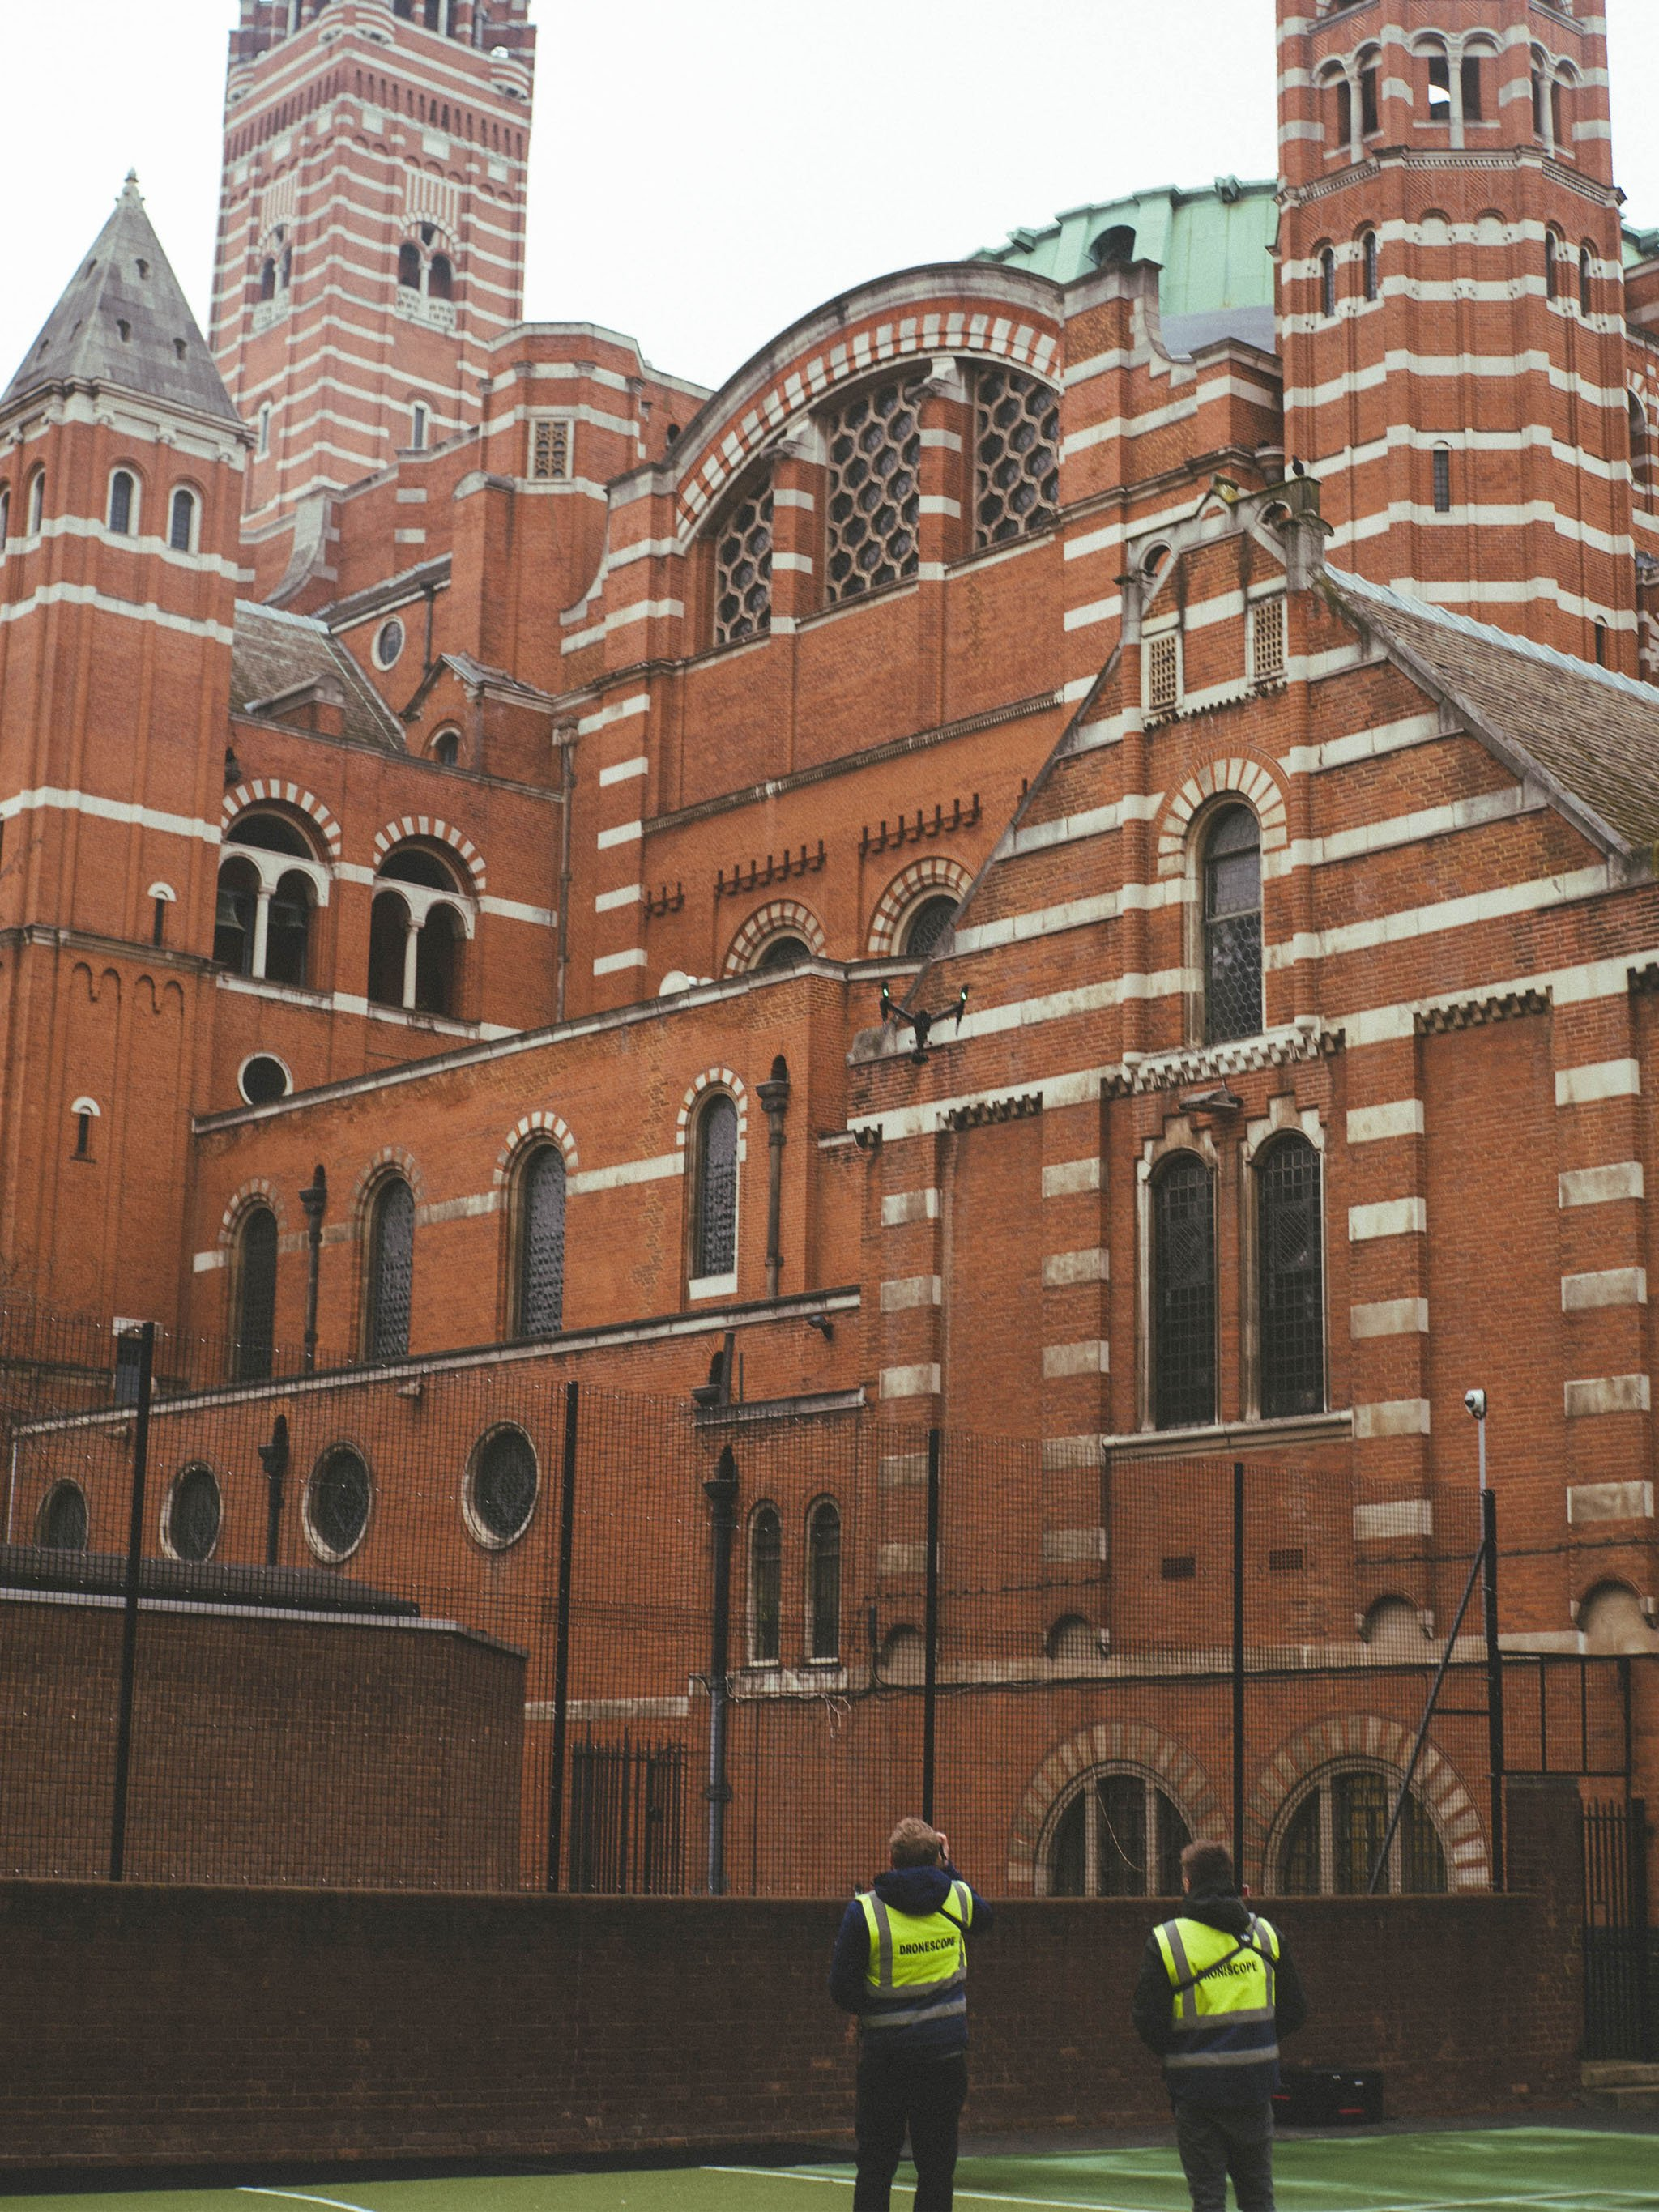 Inspire 2 and drone crew operating at Westminster Cathedral